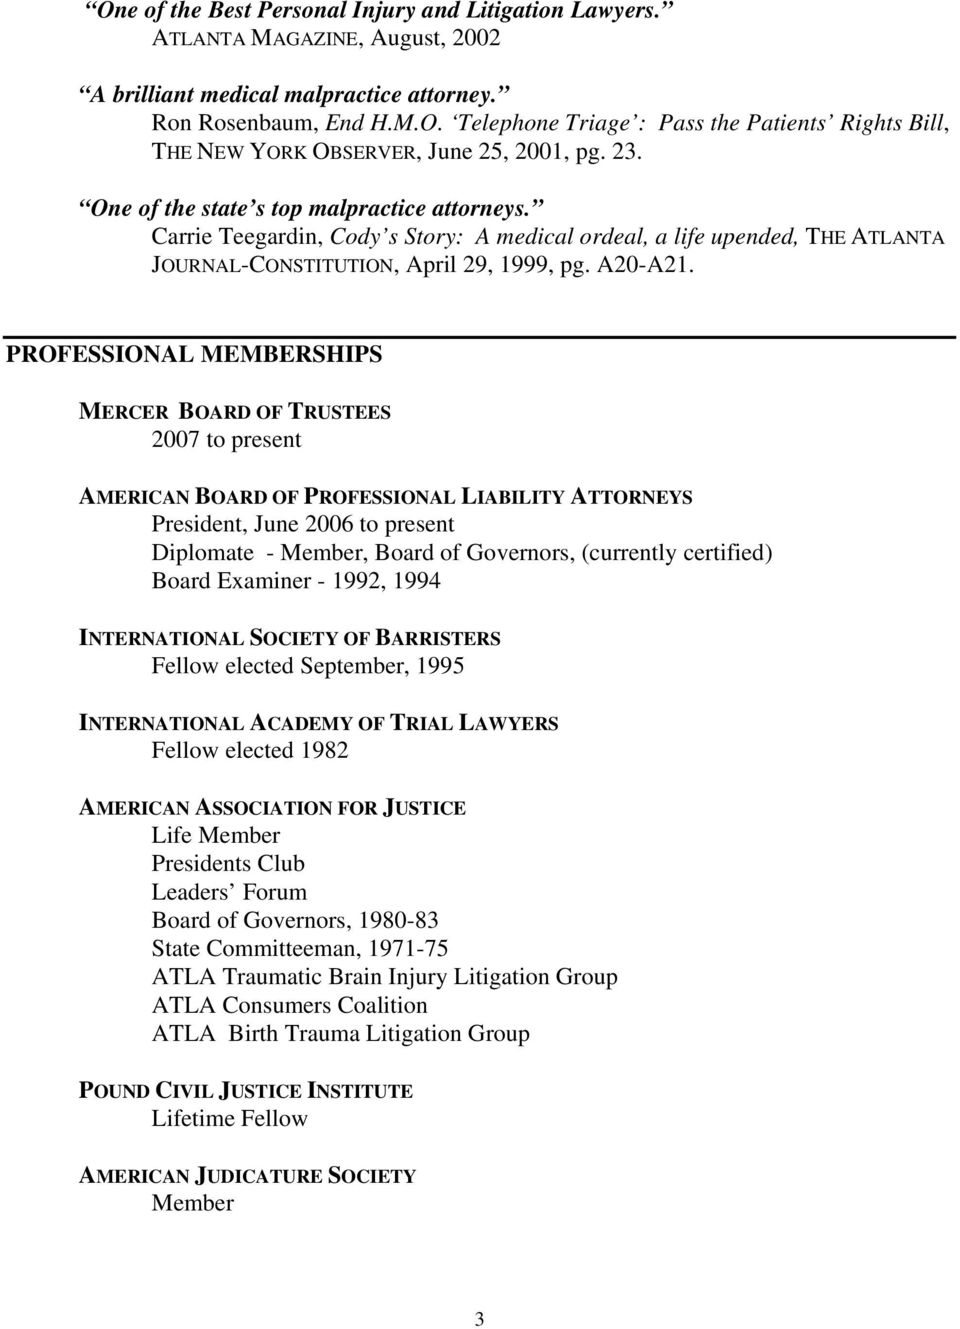 PROFESSIONAL MEMBERSHIPS MERCER BOARD OF TRUSTEES 2007 to present AMERICAN BOARD OF PROFESSIONAL LIABILITY ATTORNEYS President, June 2006 to present Diplomate - Member, Board of Governors, (currently